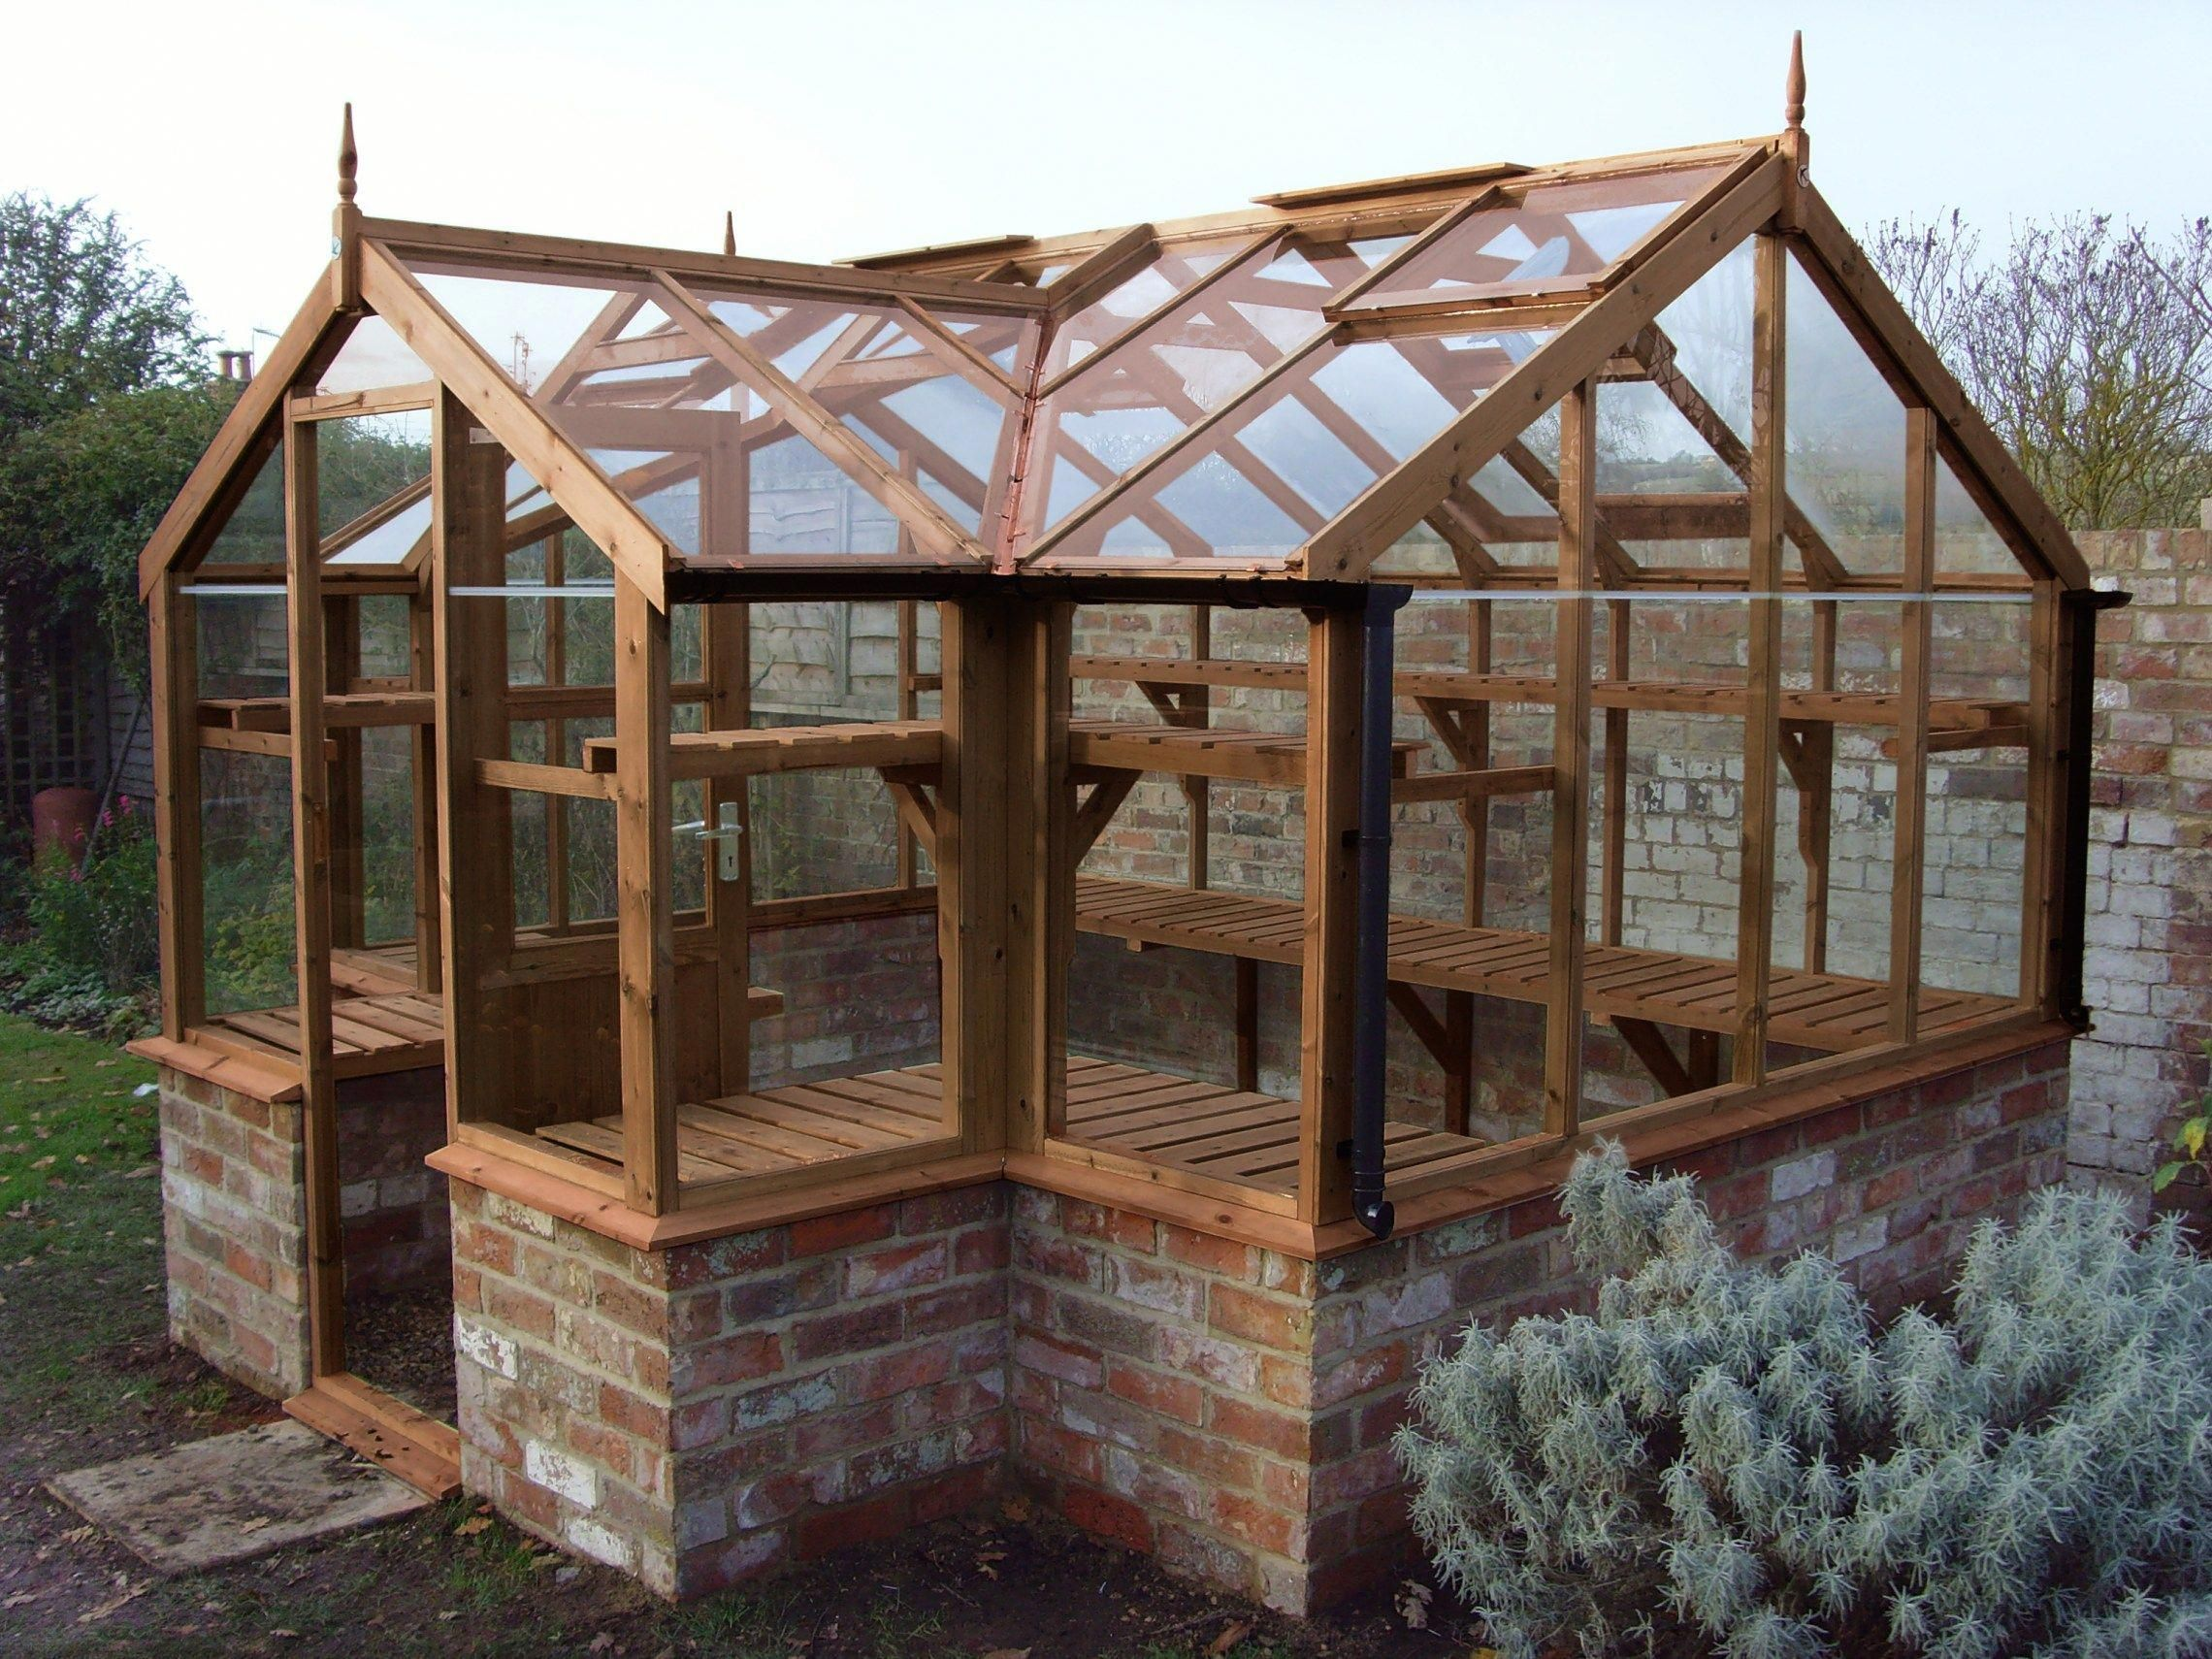 What Is A Conservatory Diy Greenhouse Plans Backyard Greenhouse Build A Greenhouse Backyard greenhouse design plans